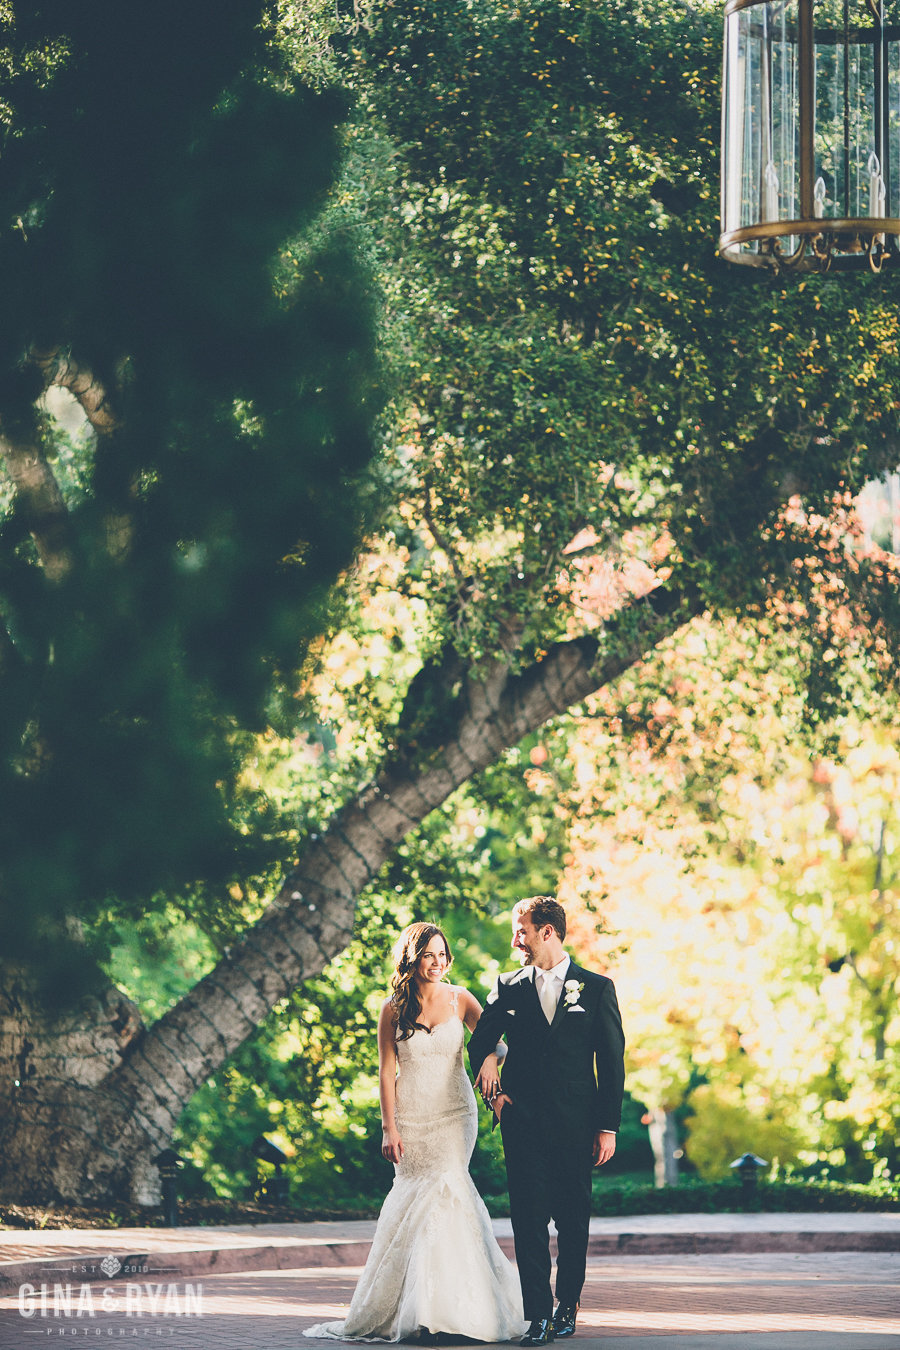 Gina & Ryan Photography - 019